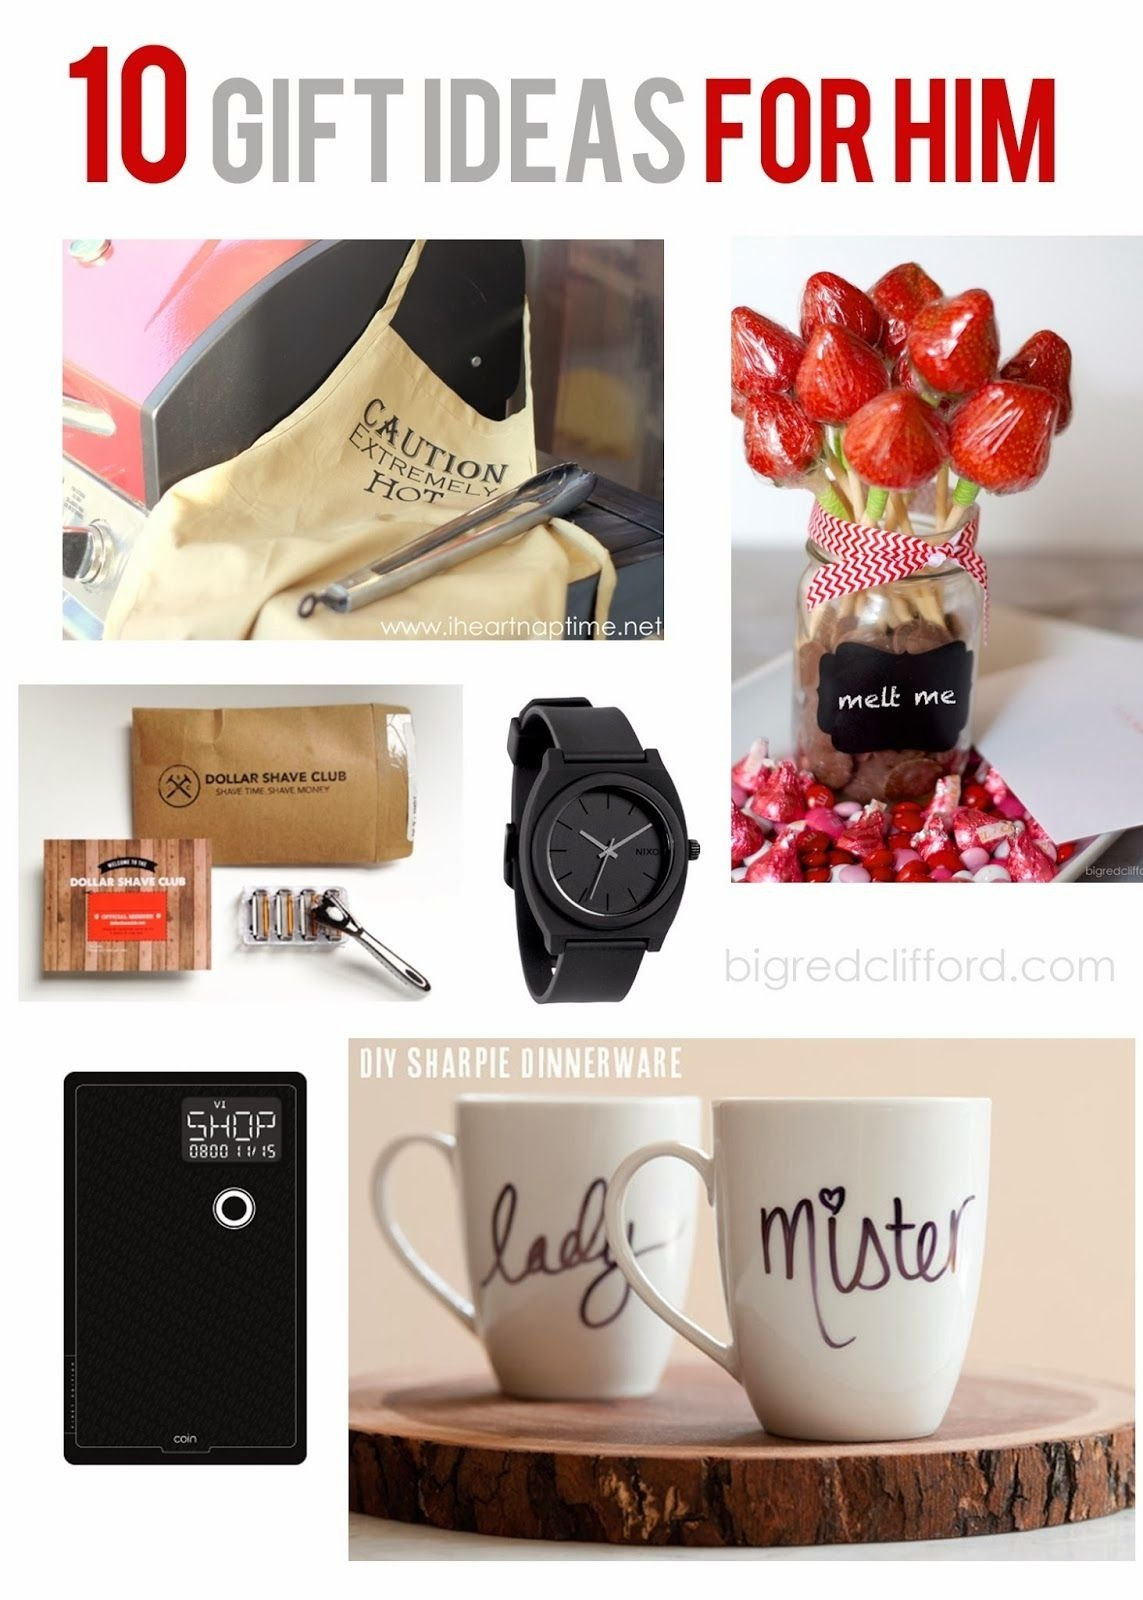 valentines ideas for him. diy, and quick amazon grabs. you're